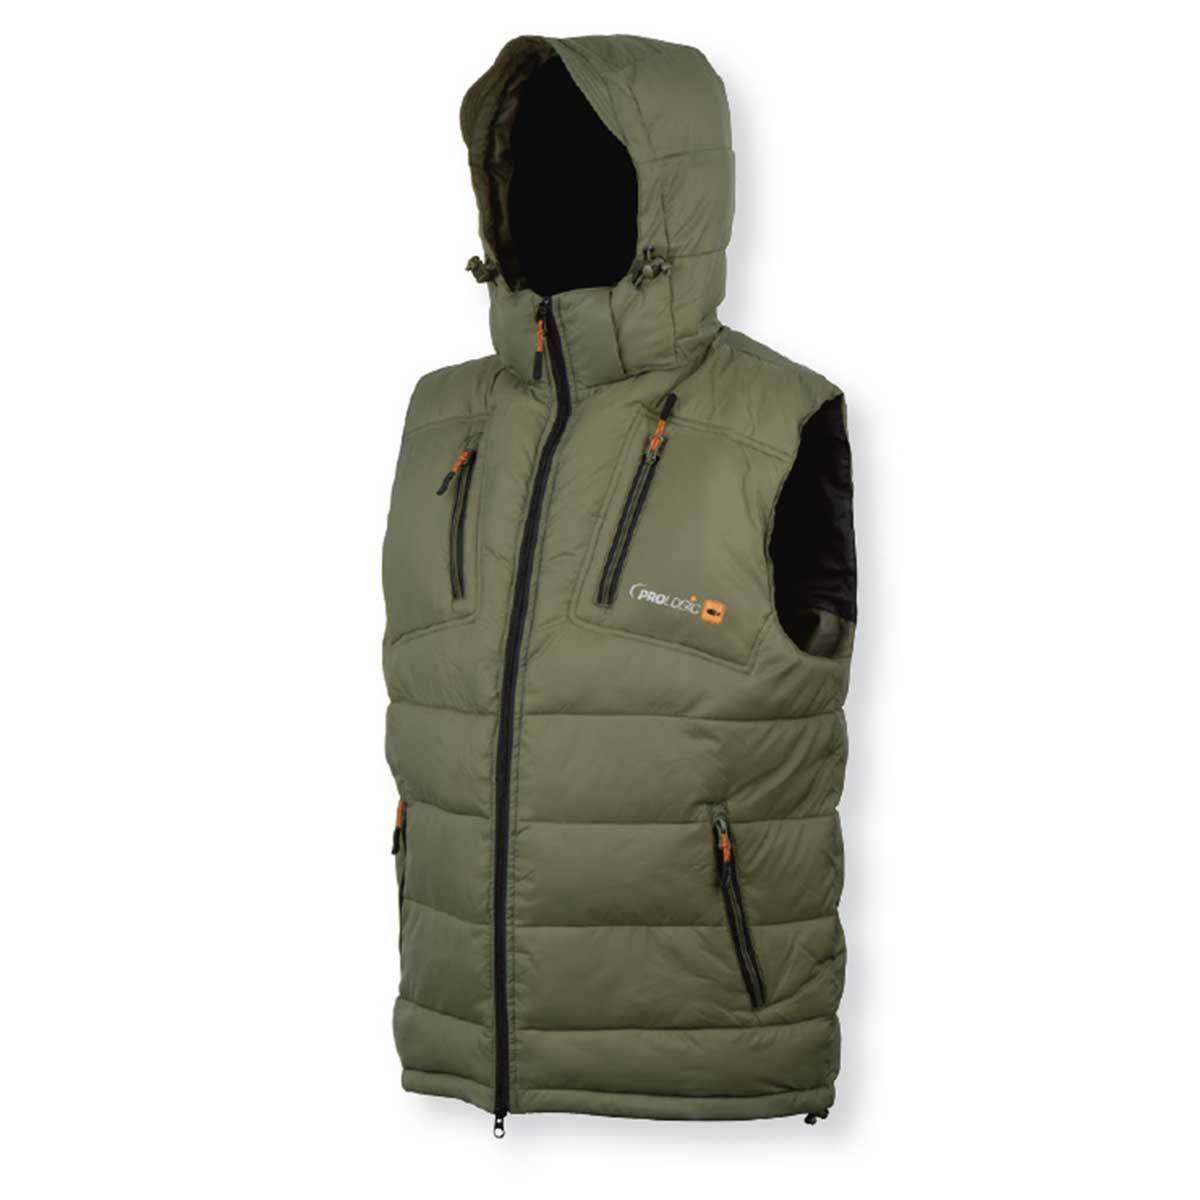 PROLOGIC GREEN THERMO CARP FISHING BODY WARMER SUPER WARM